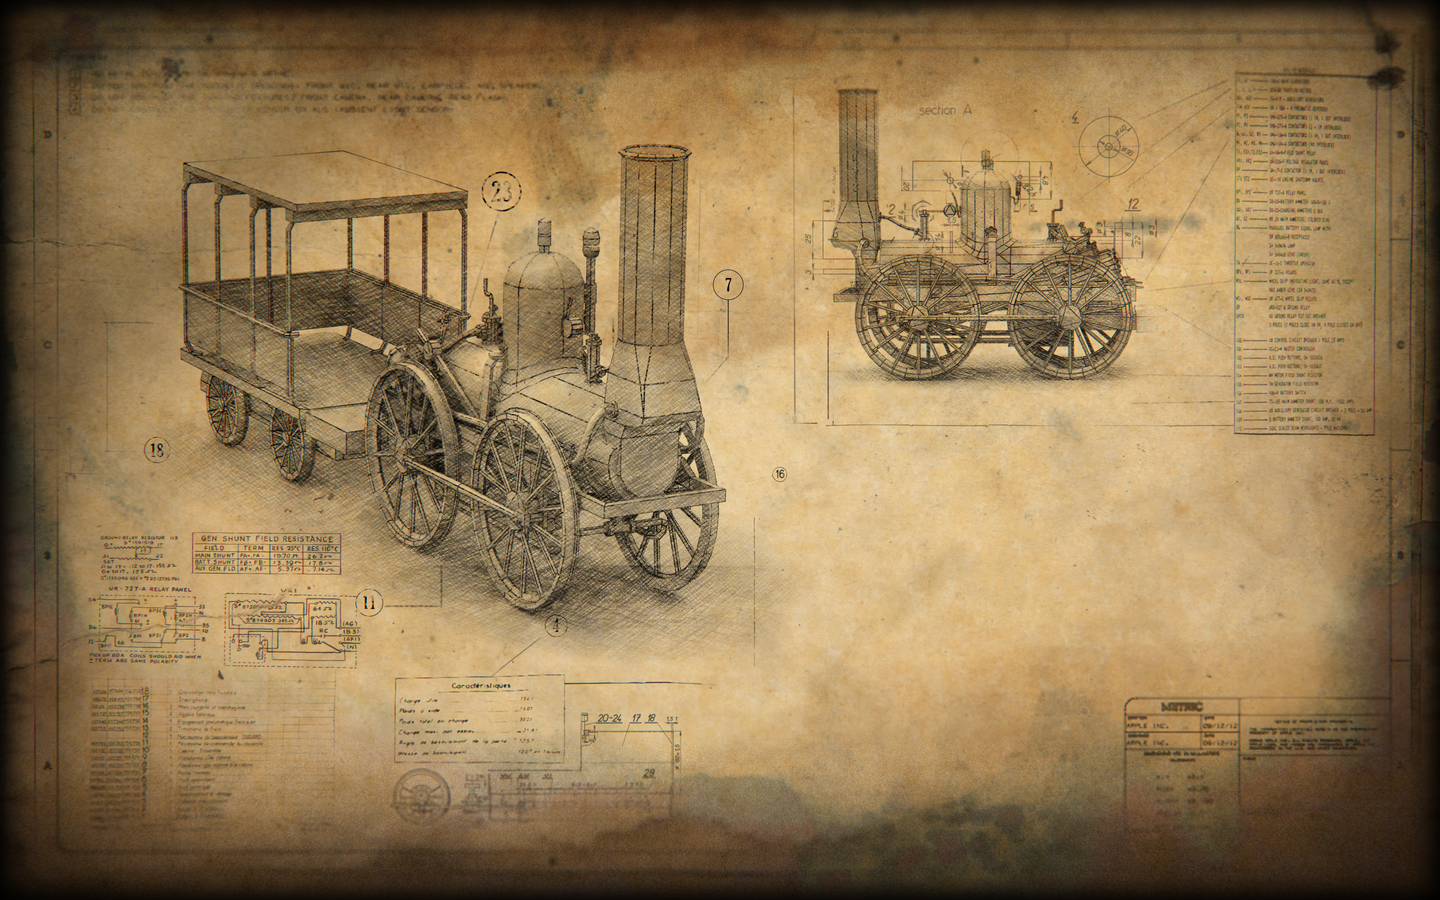 Dewitt clinton blueprint image bounty train mod db add media report rss dewitt clinton blueprint view original malvernweather Image collections